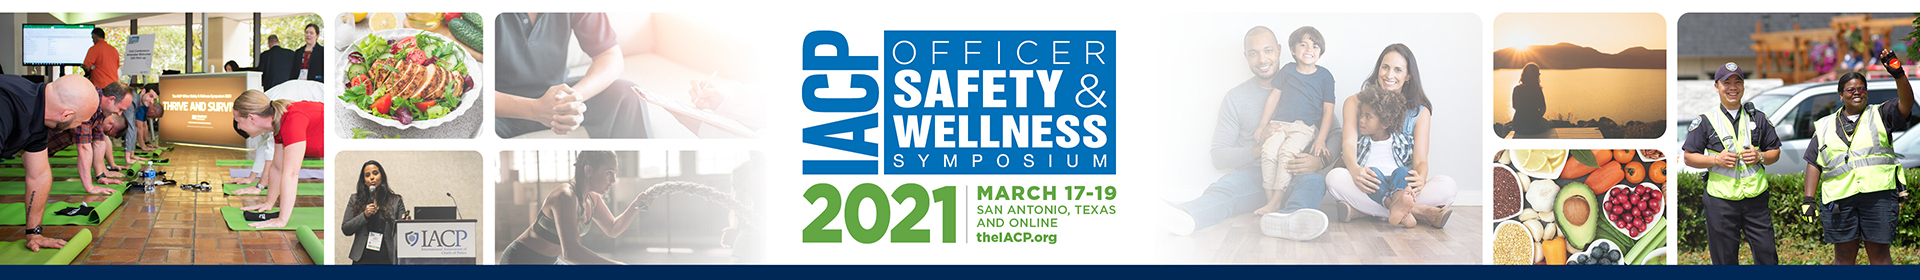 Officer Safety and Wellness Symposium 2021 Event Banner